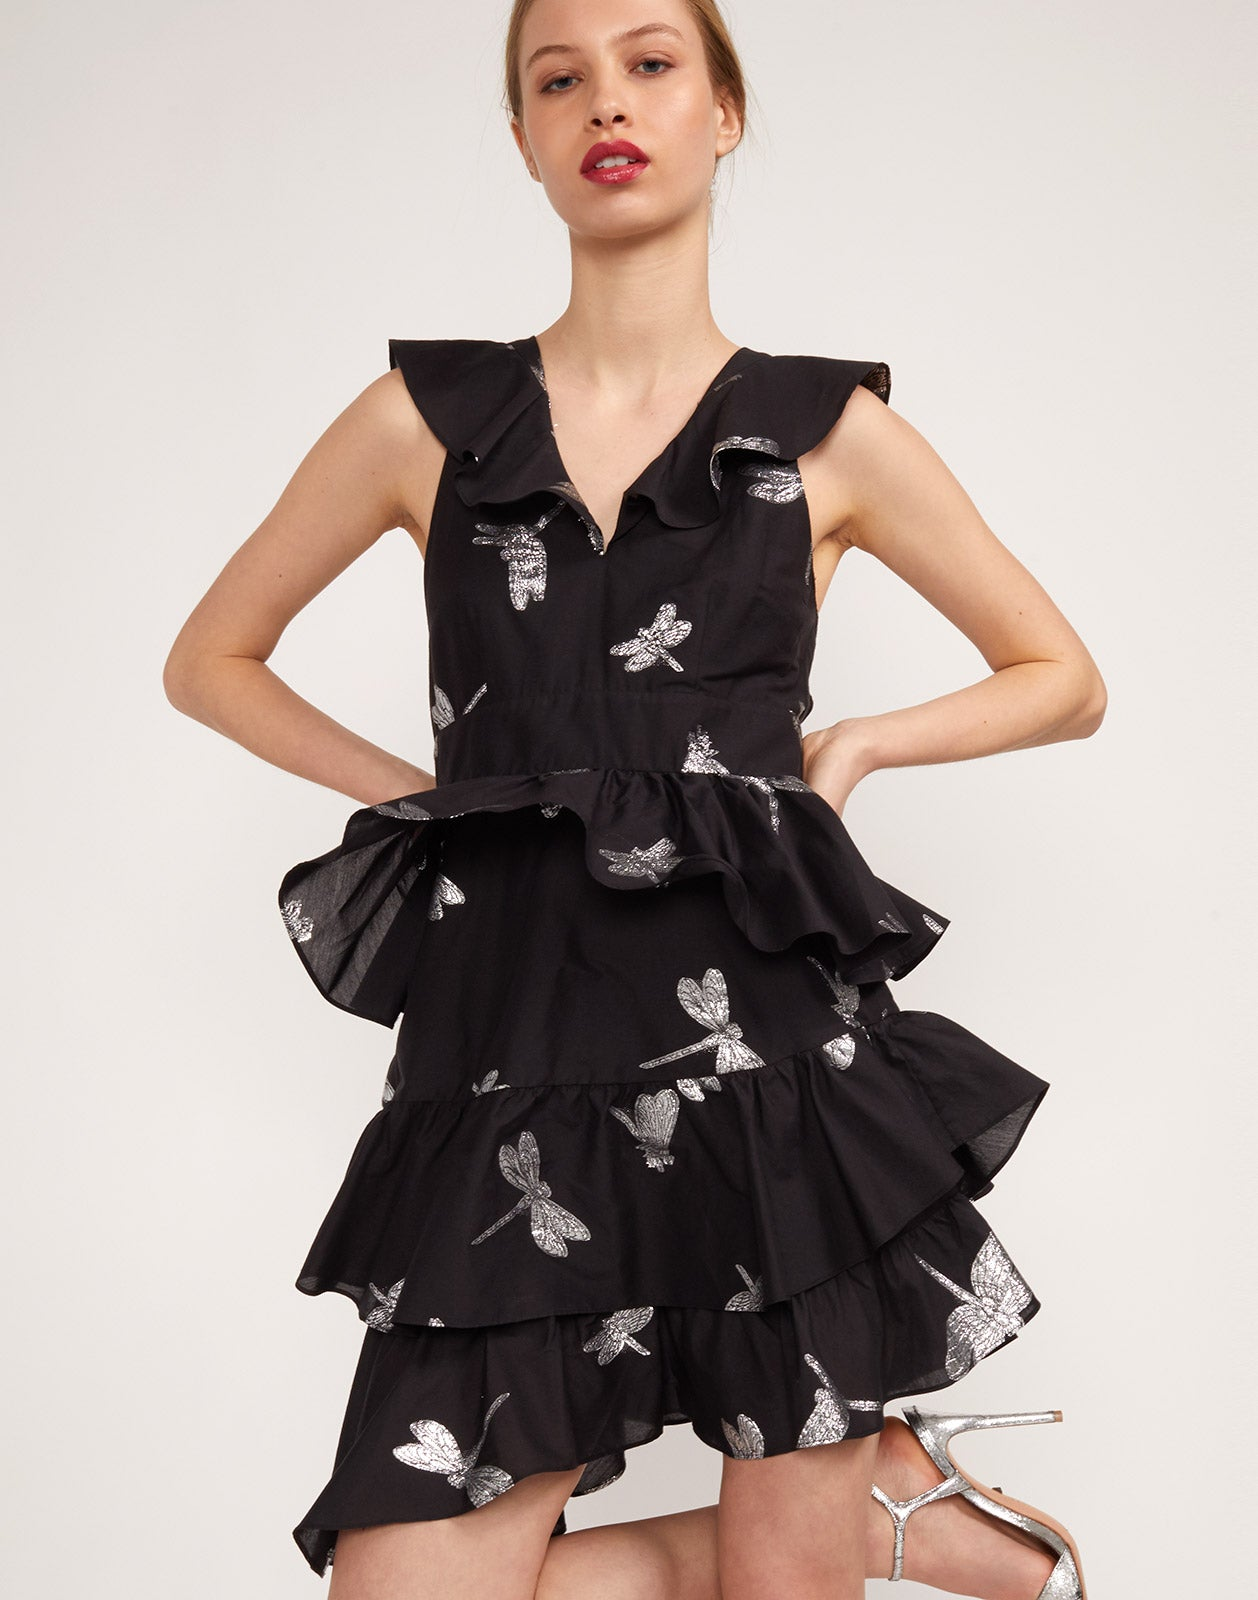 Front view of the Jetset Dragonfly Mini Dress